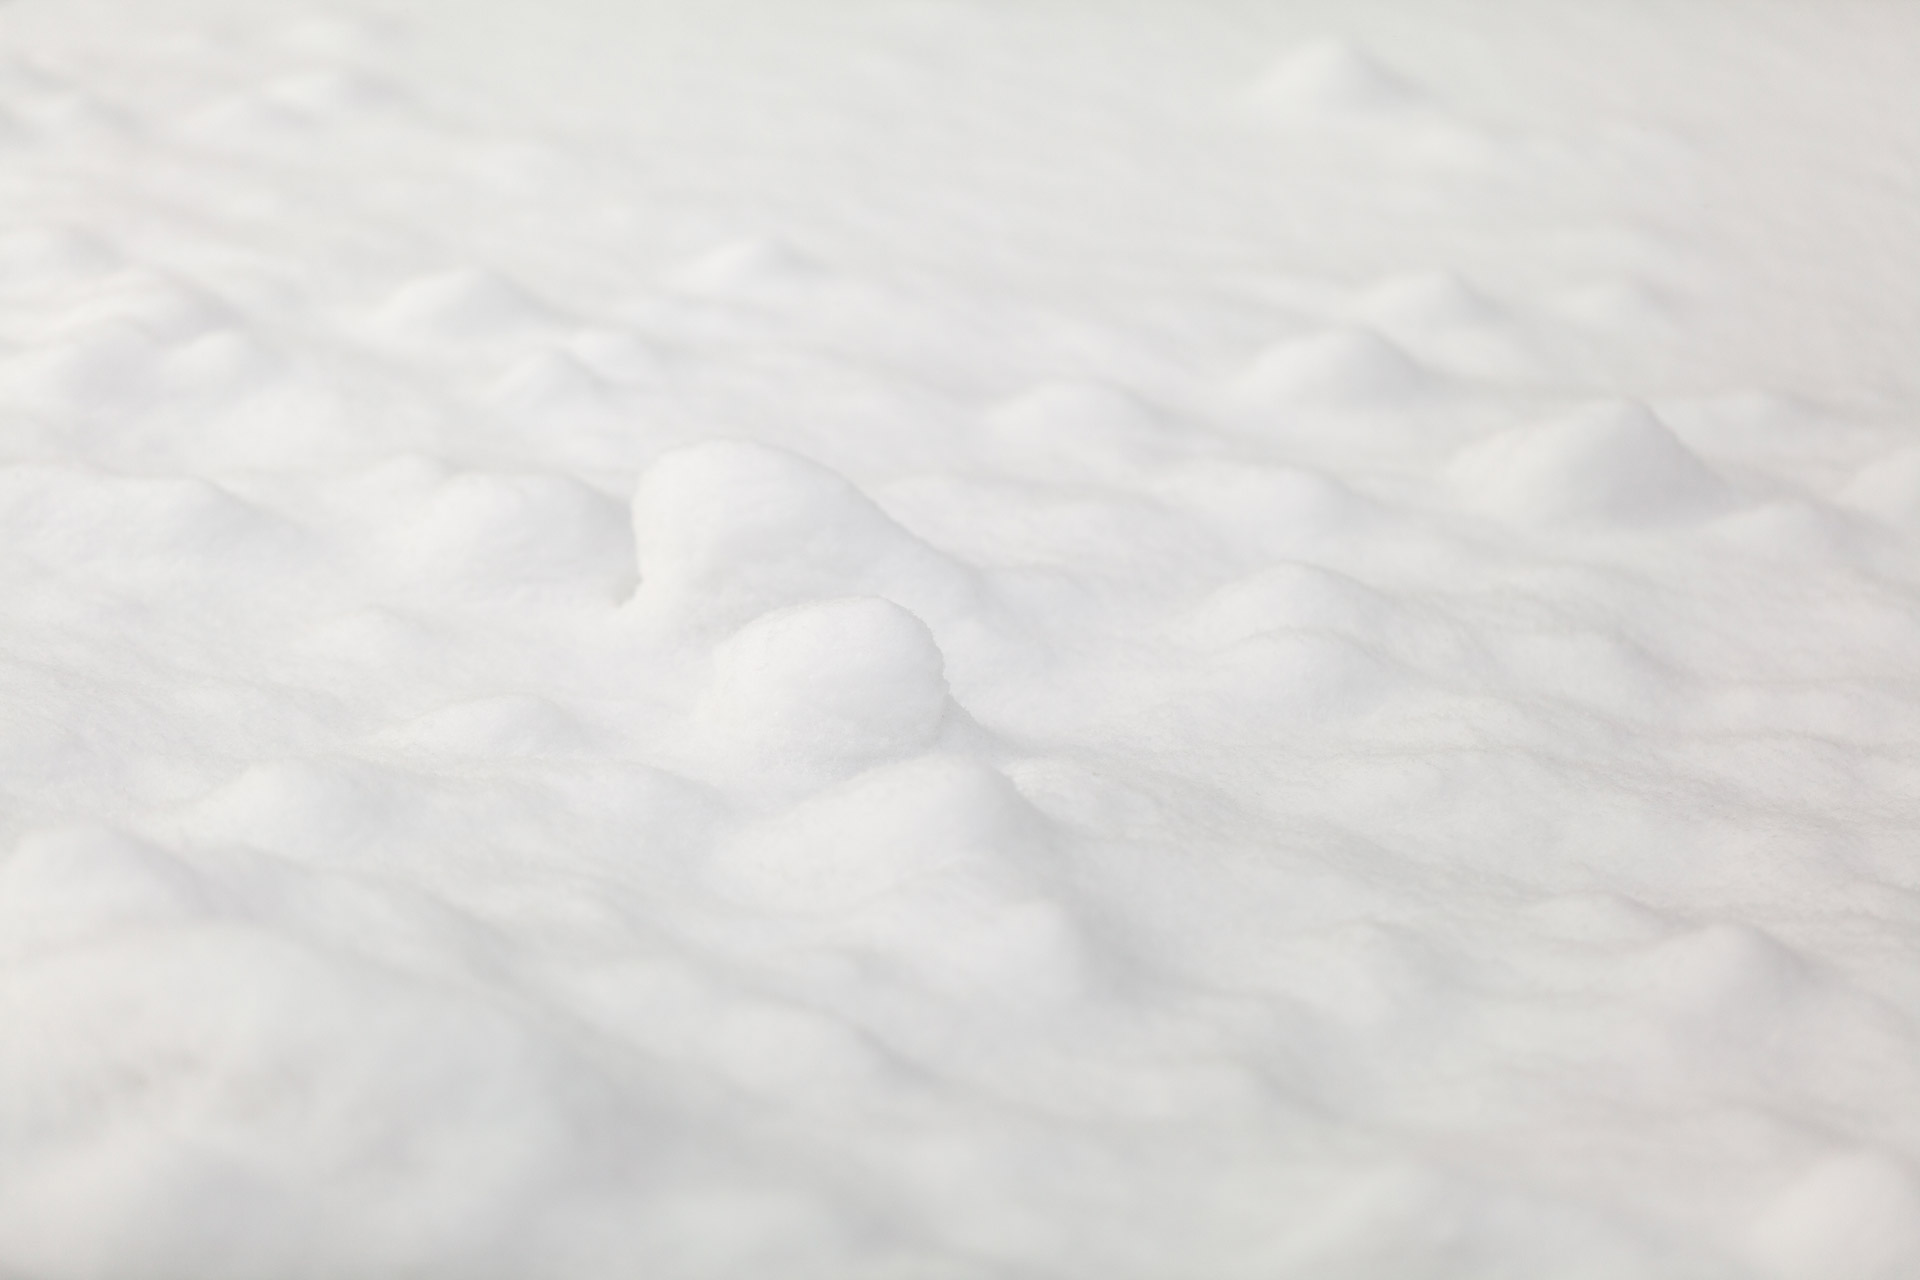 texture snow, download photo, snow texture background